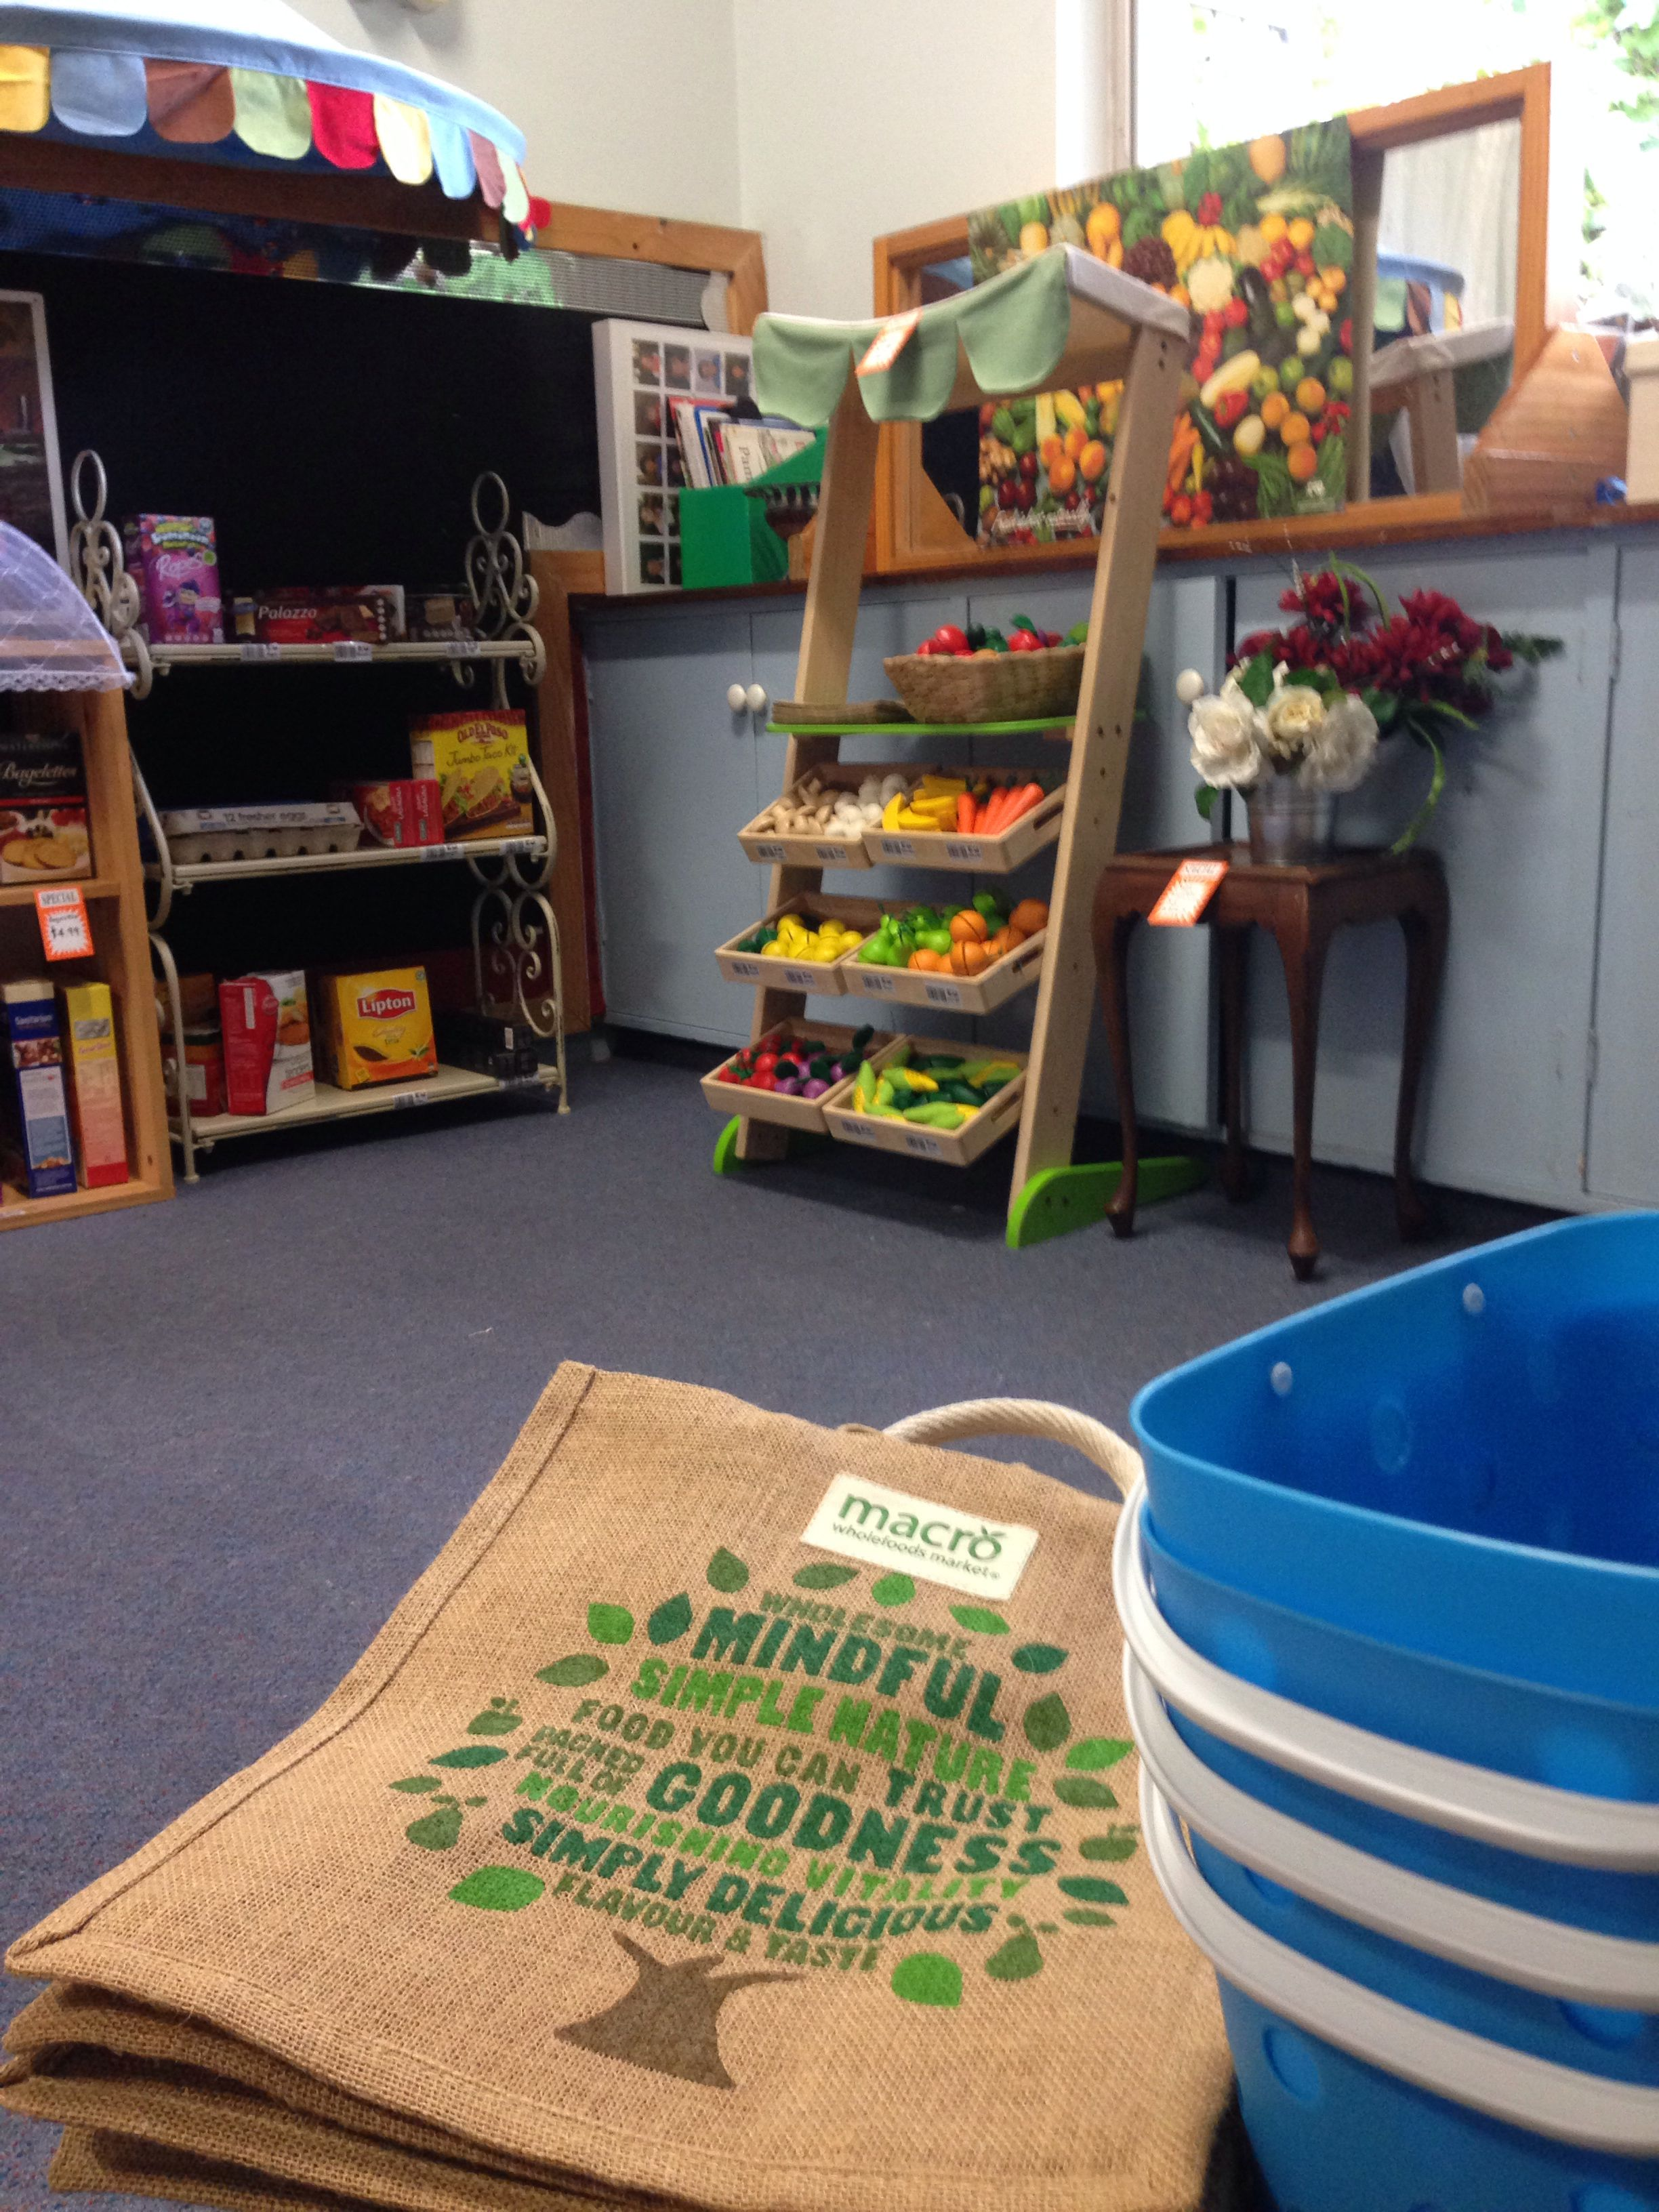 Our preschool has a supermarket! My group have loved this dramatic play experience.